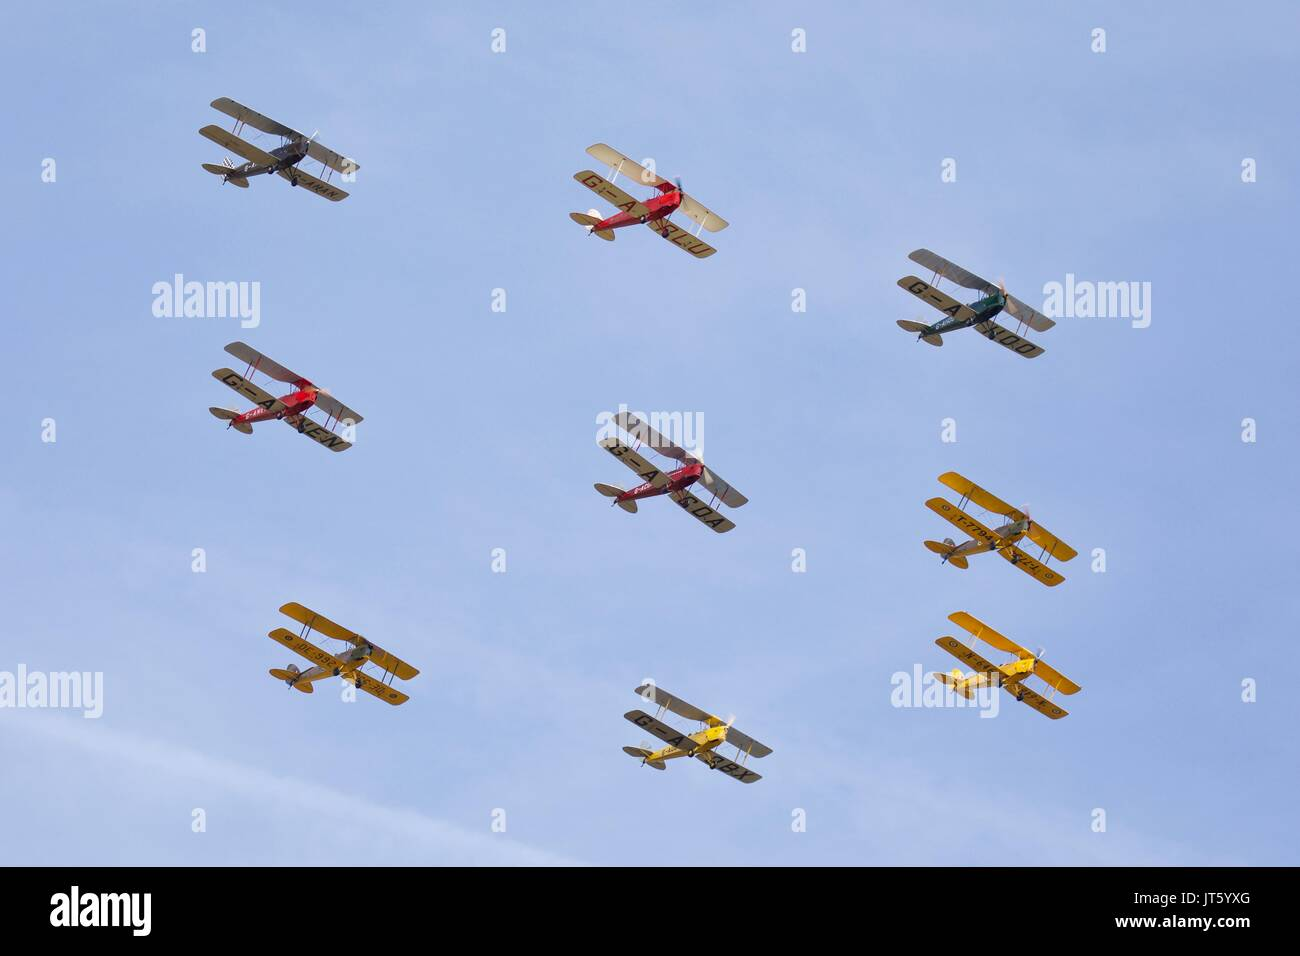 Tiger 9 Aeronautical Display Team flying at Shuttleworth in Box formation - Stock Image